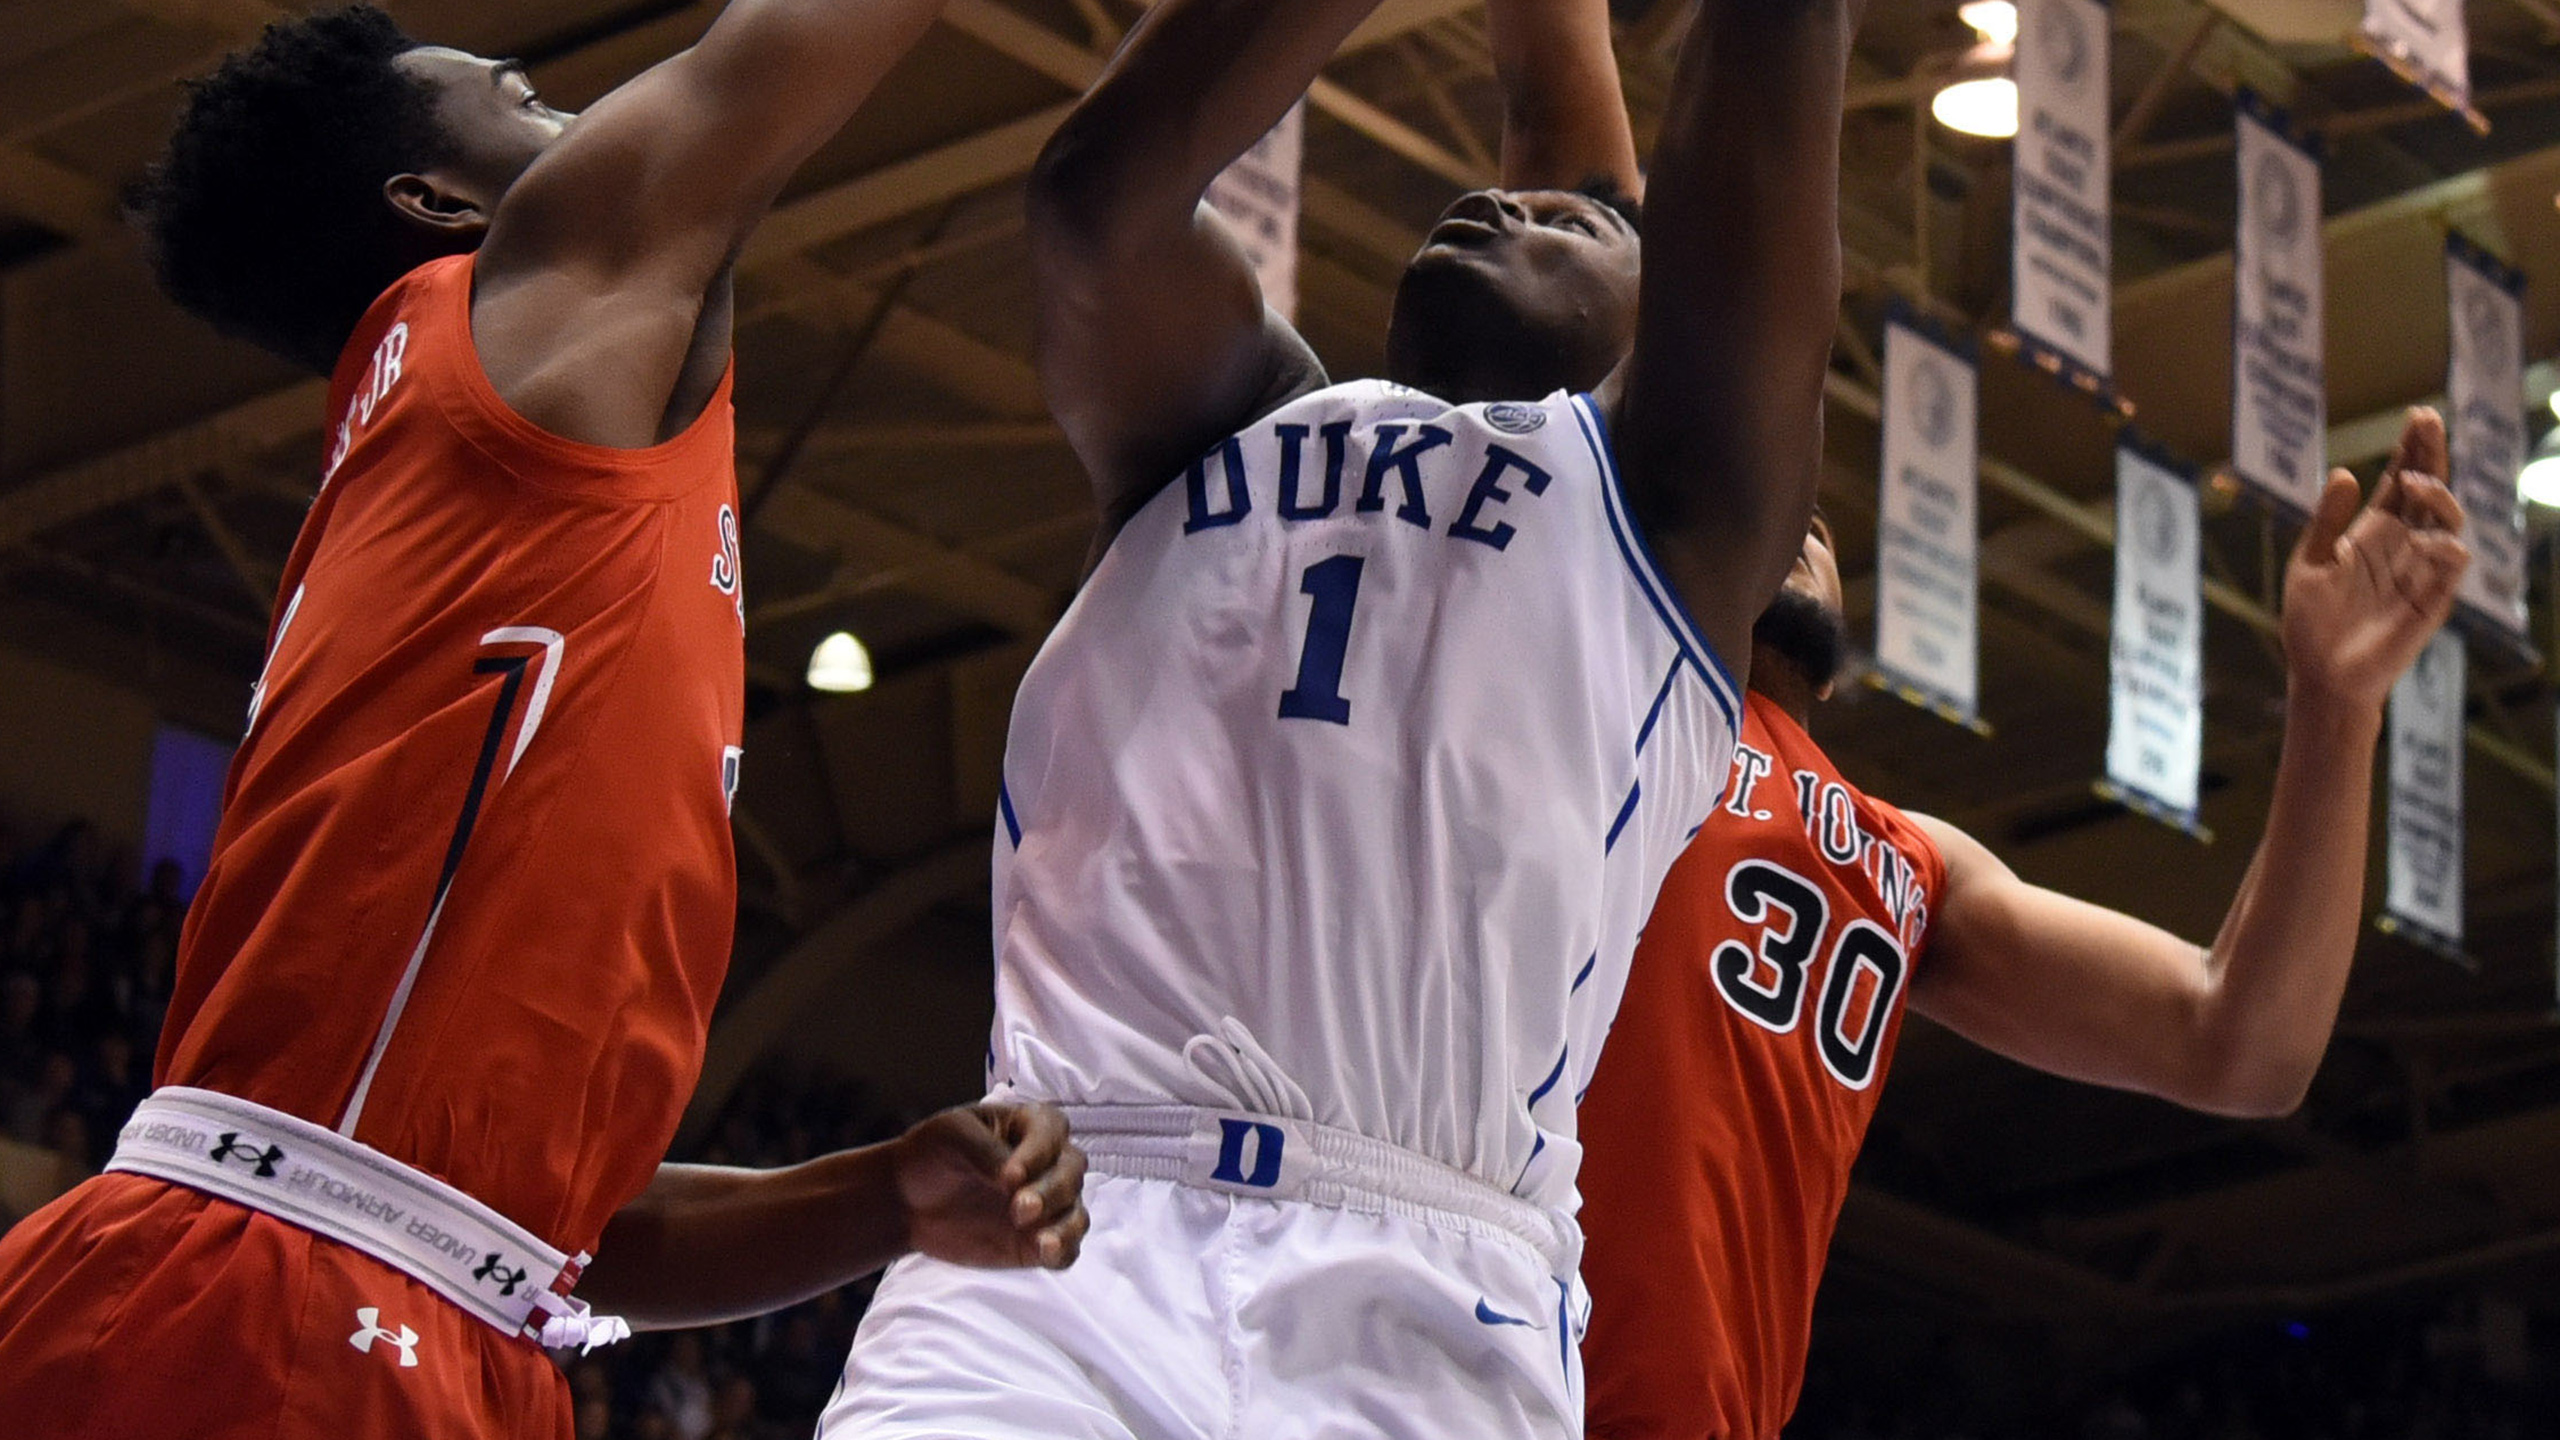 St. John's vs. #2 Duke (M Basketball)